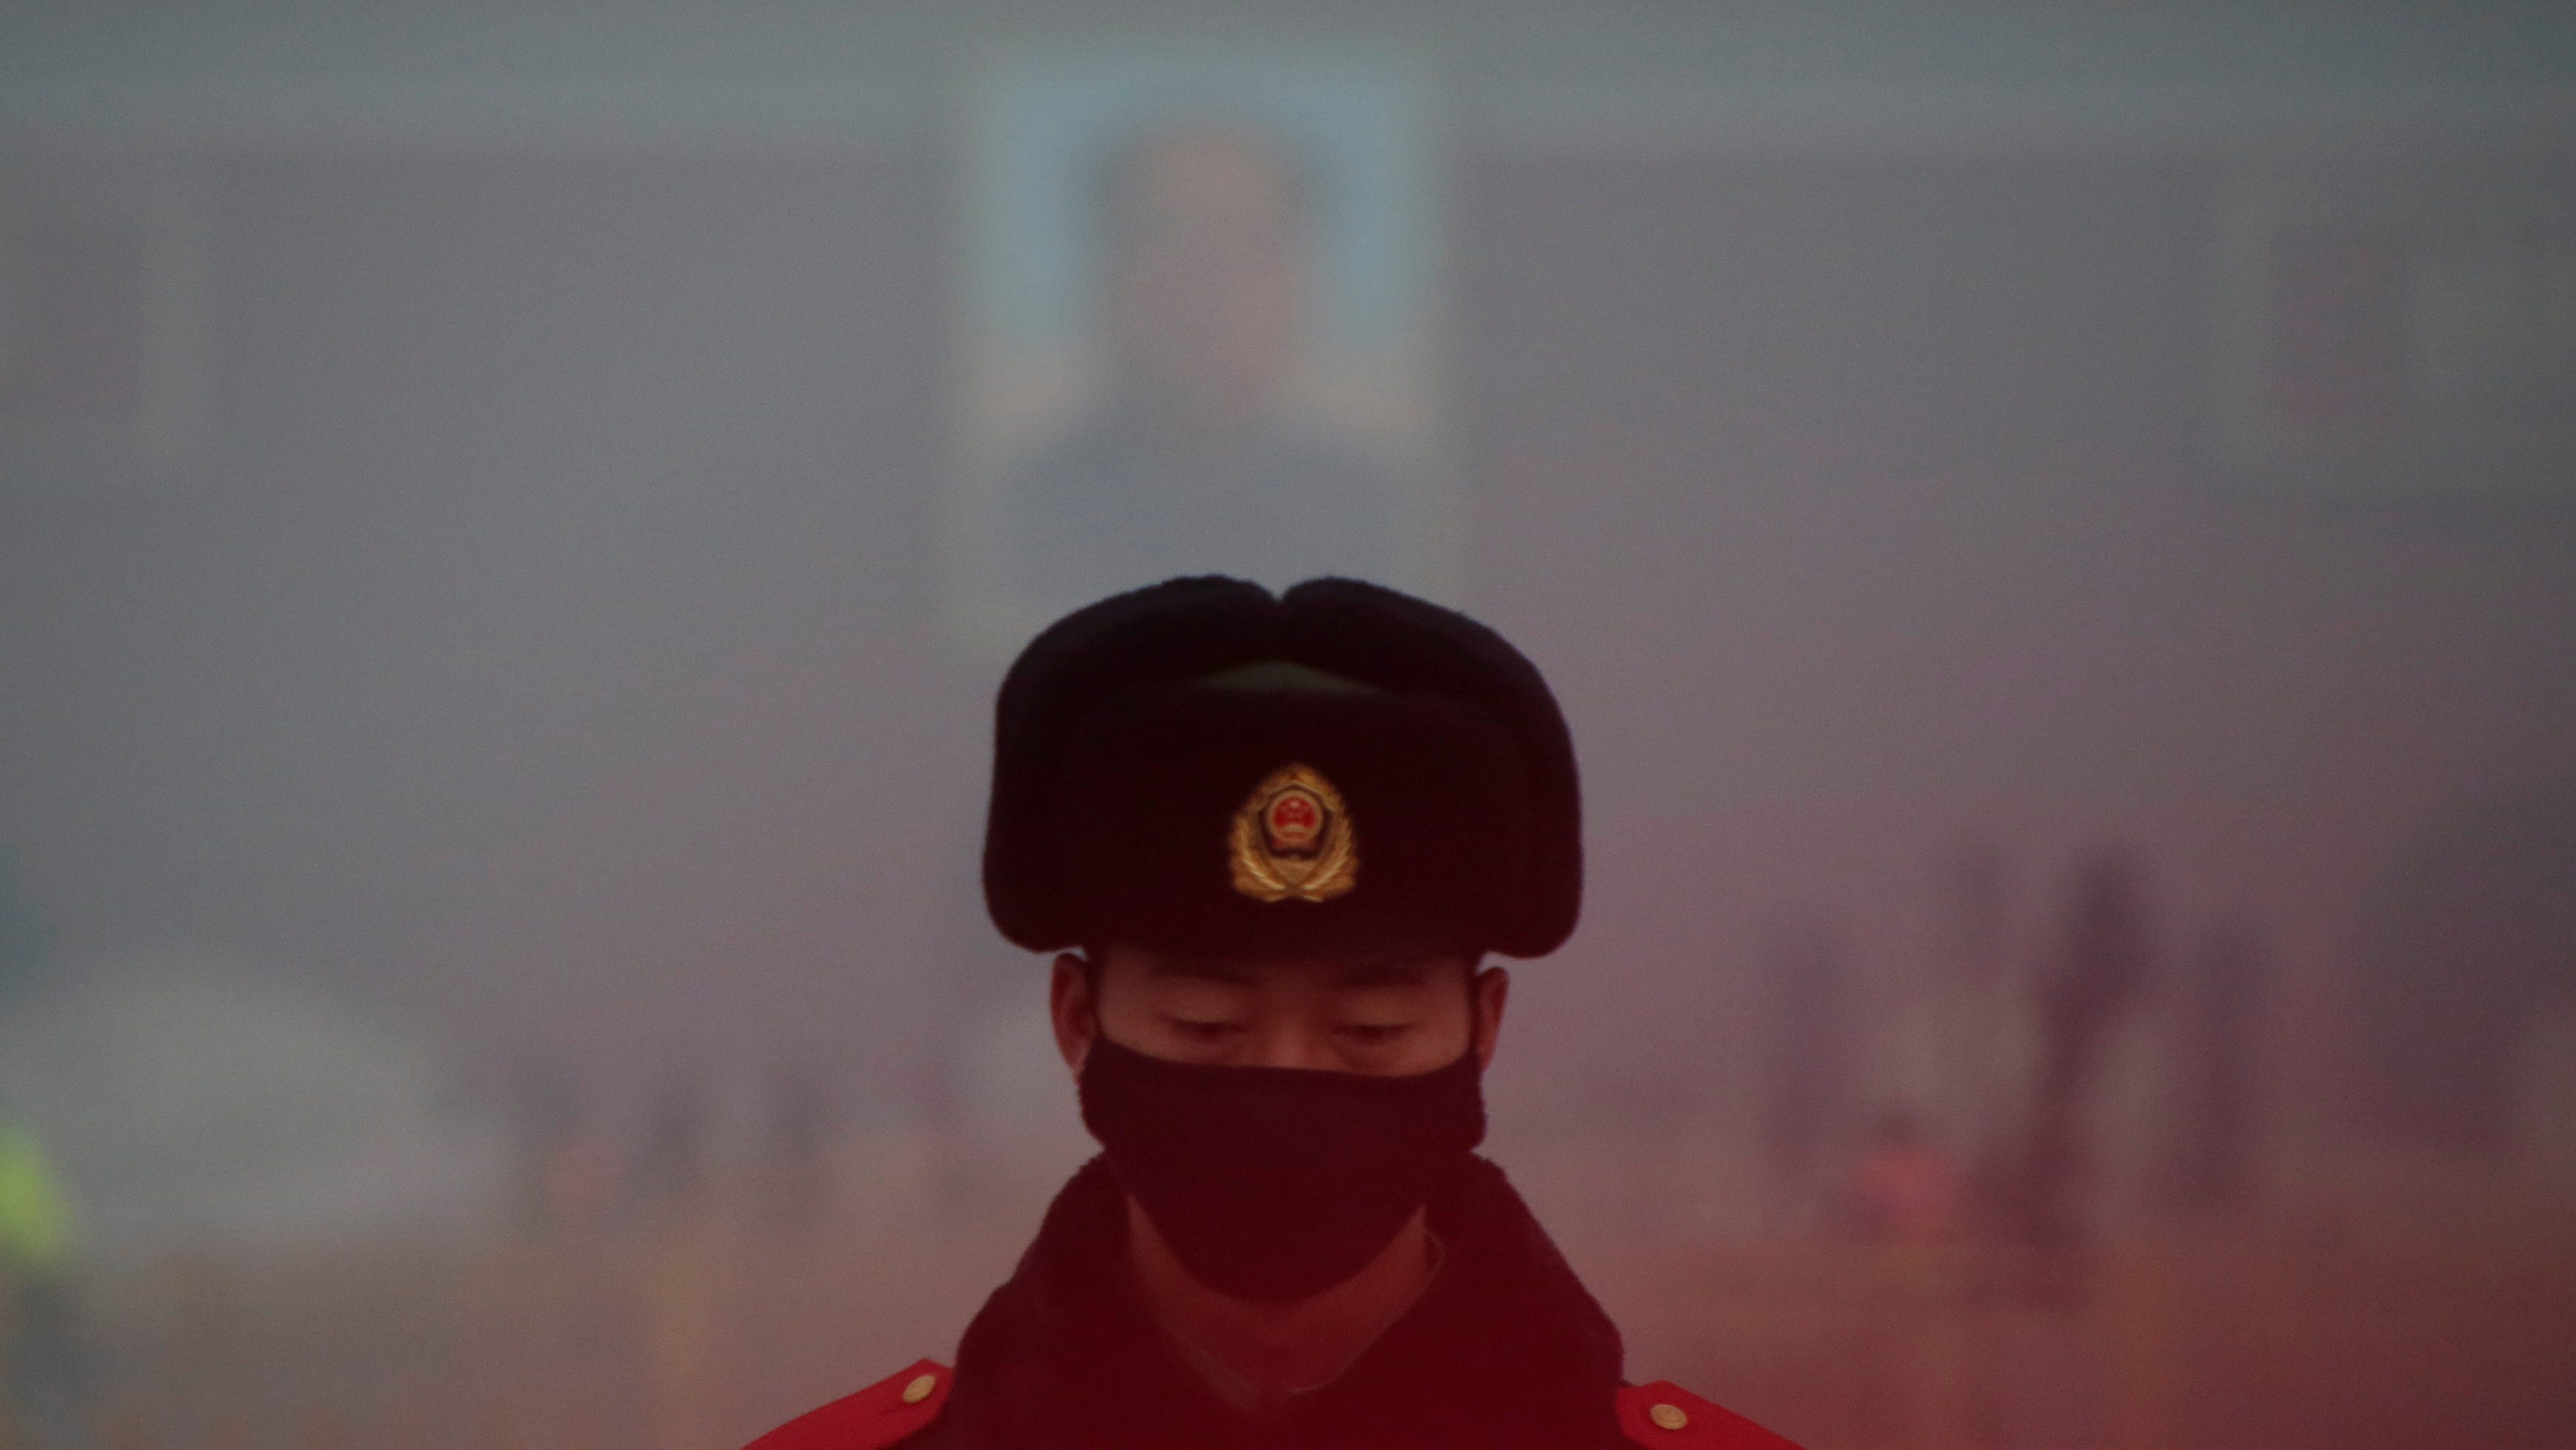 A paramilitary police officer wearing a mask stands guard in front of a portrait of the late Chairman Mao Zedong during smog at Tiananmen Square after a red alert was issued for heavy air pollution in Beijing, China, December 20, 2016. REUTERS/Jason Lee - RTX2VRON